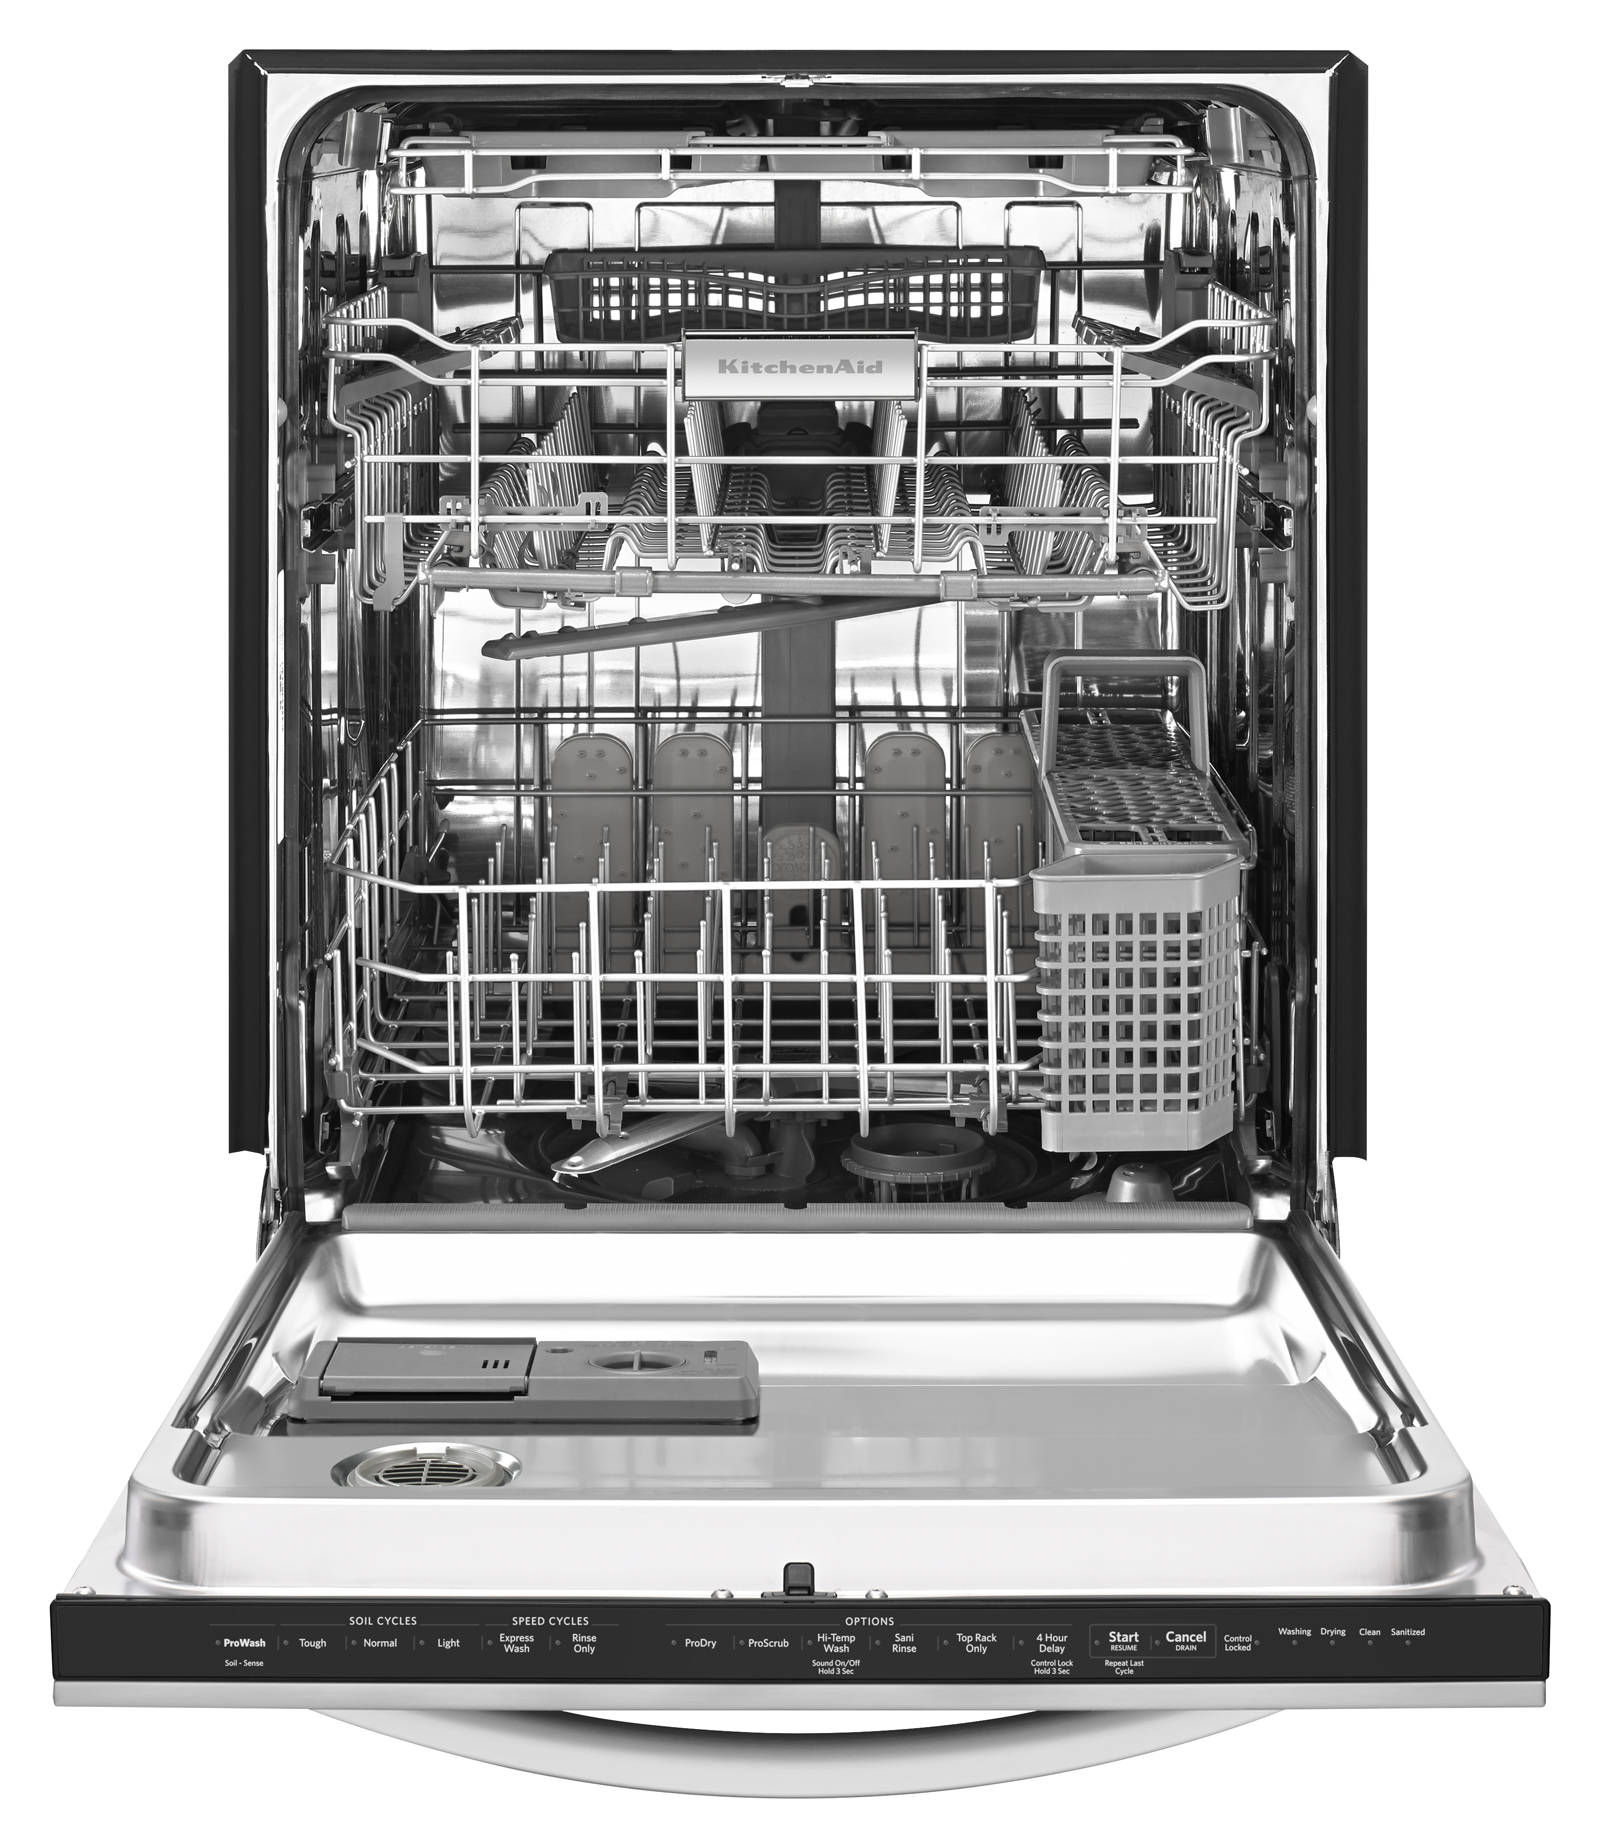 KitchenAid 24-in. Built-in Dishwasher w/ ProScrub® Trio and Third Rack - Stainless Steel